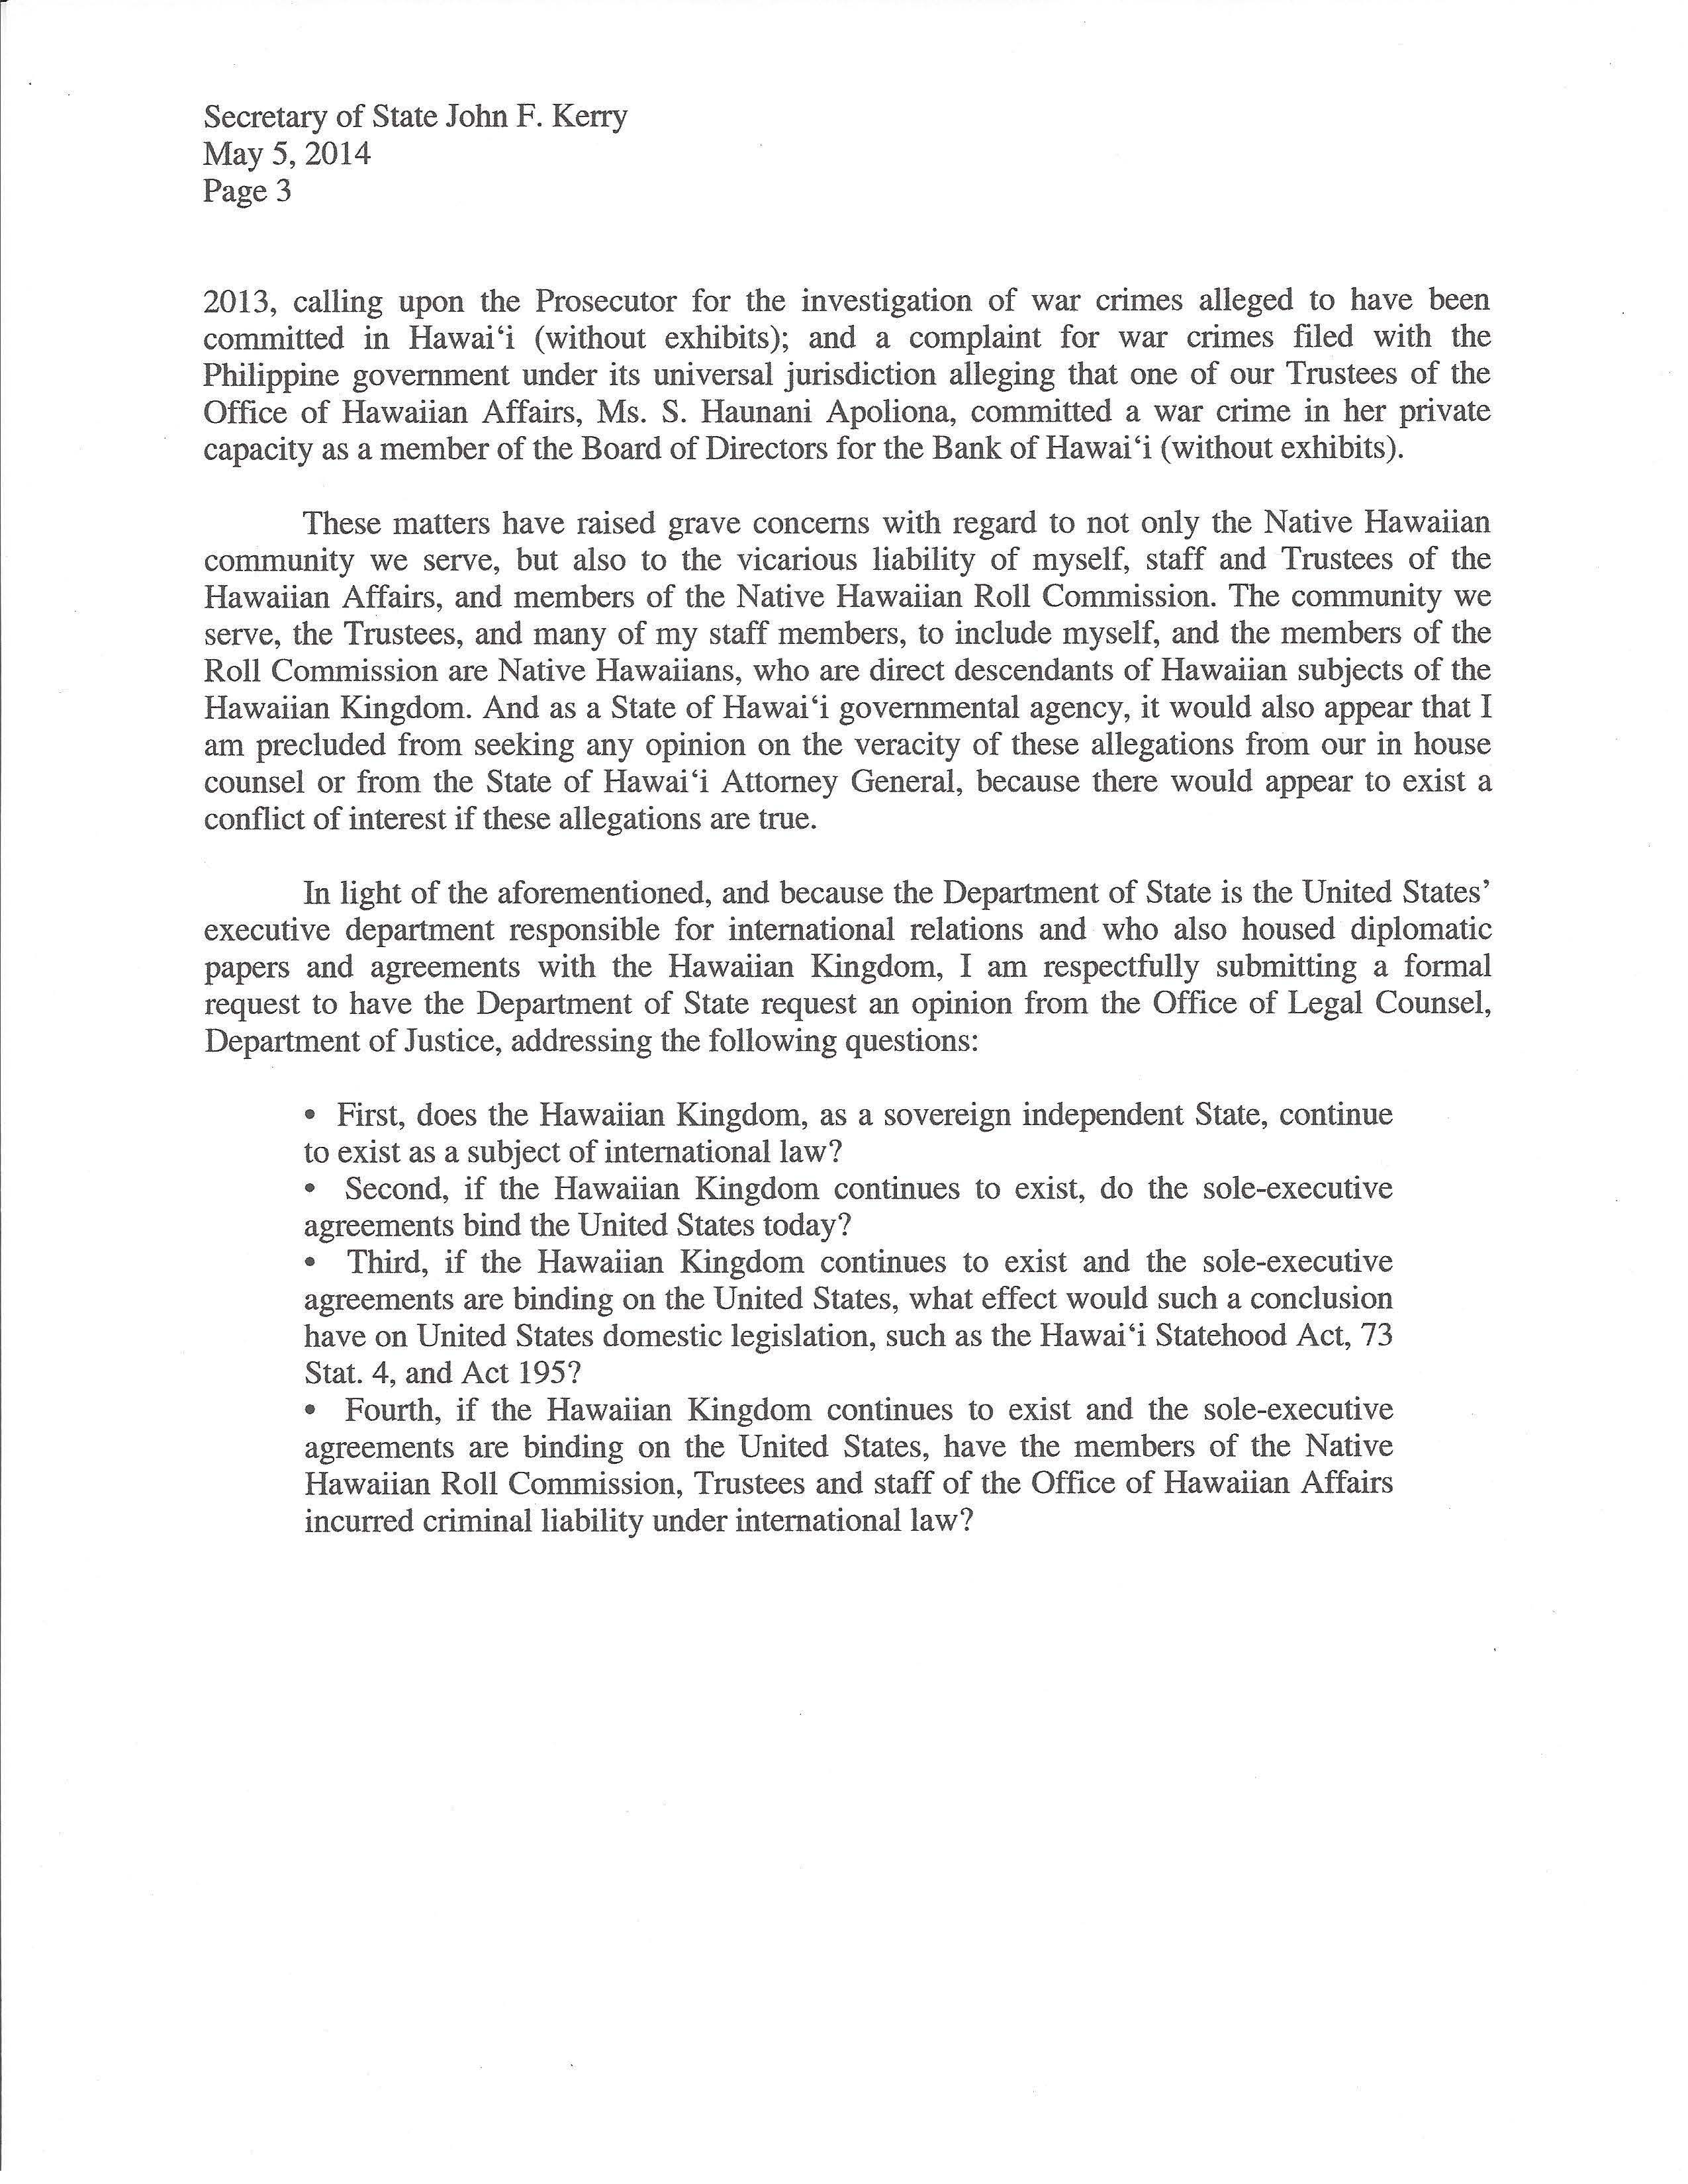 Business Letter Format Page 2